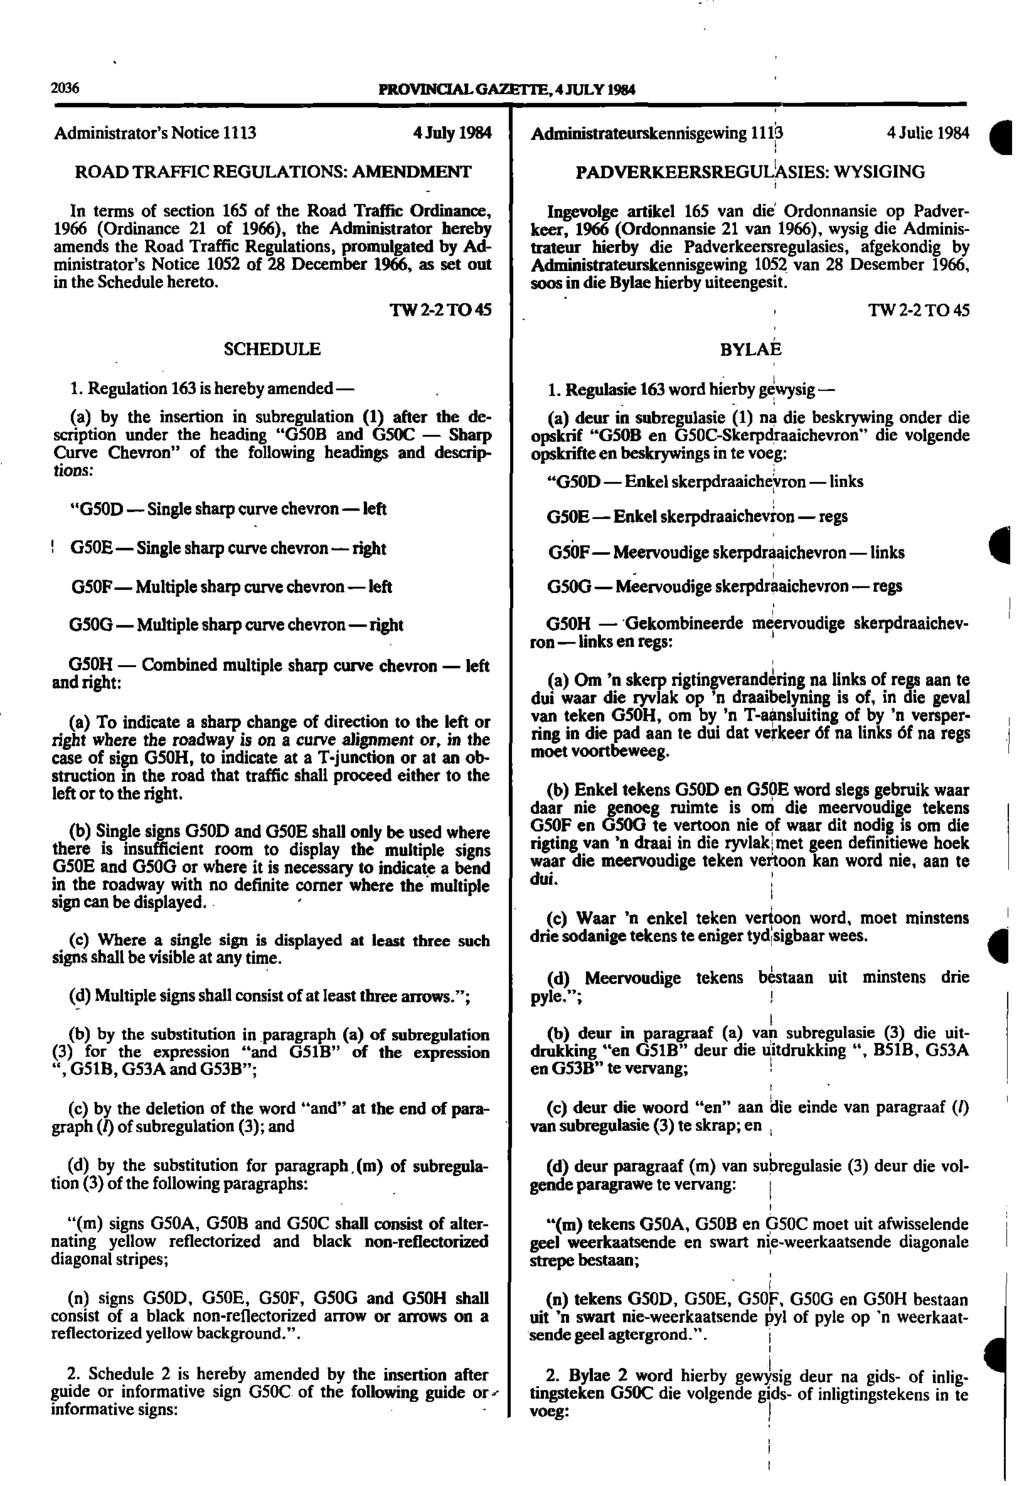 2036 PROVINCIAL GAZETIE, 4 JULY 984 Administrator's Notice 3 4July 984 Administrateurskennisgewing 0 4 Julie 984 ROAD TRAFFIC REGULATIONS: AMENDMENT PADVERICEERSREGULAISIES: WYSIGING In terms of